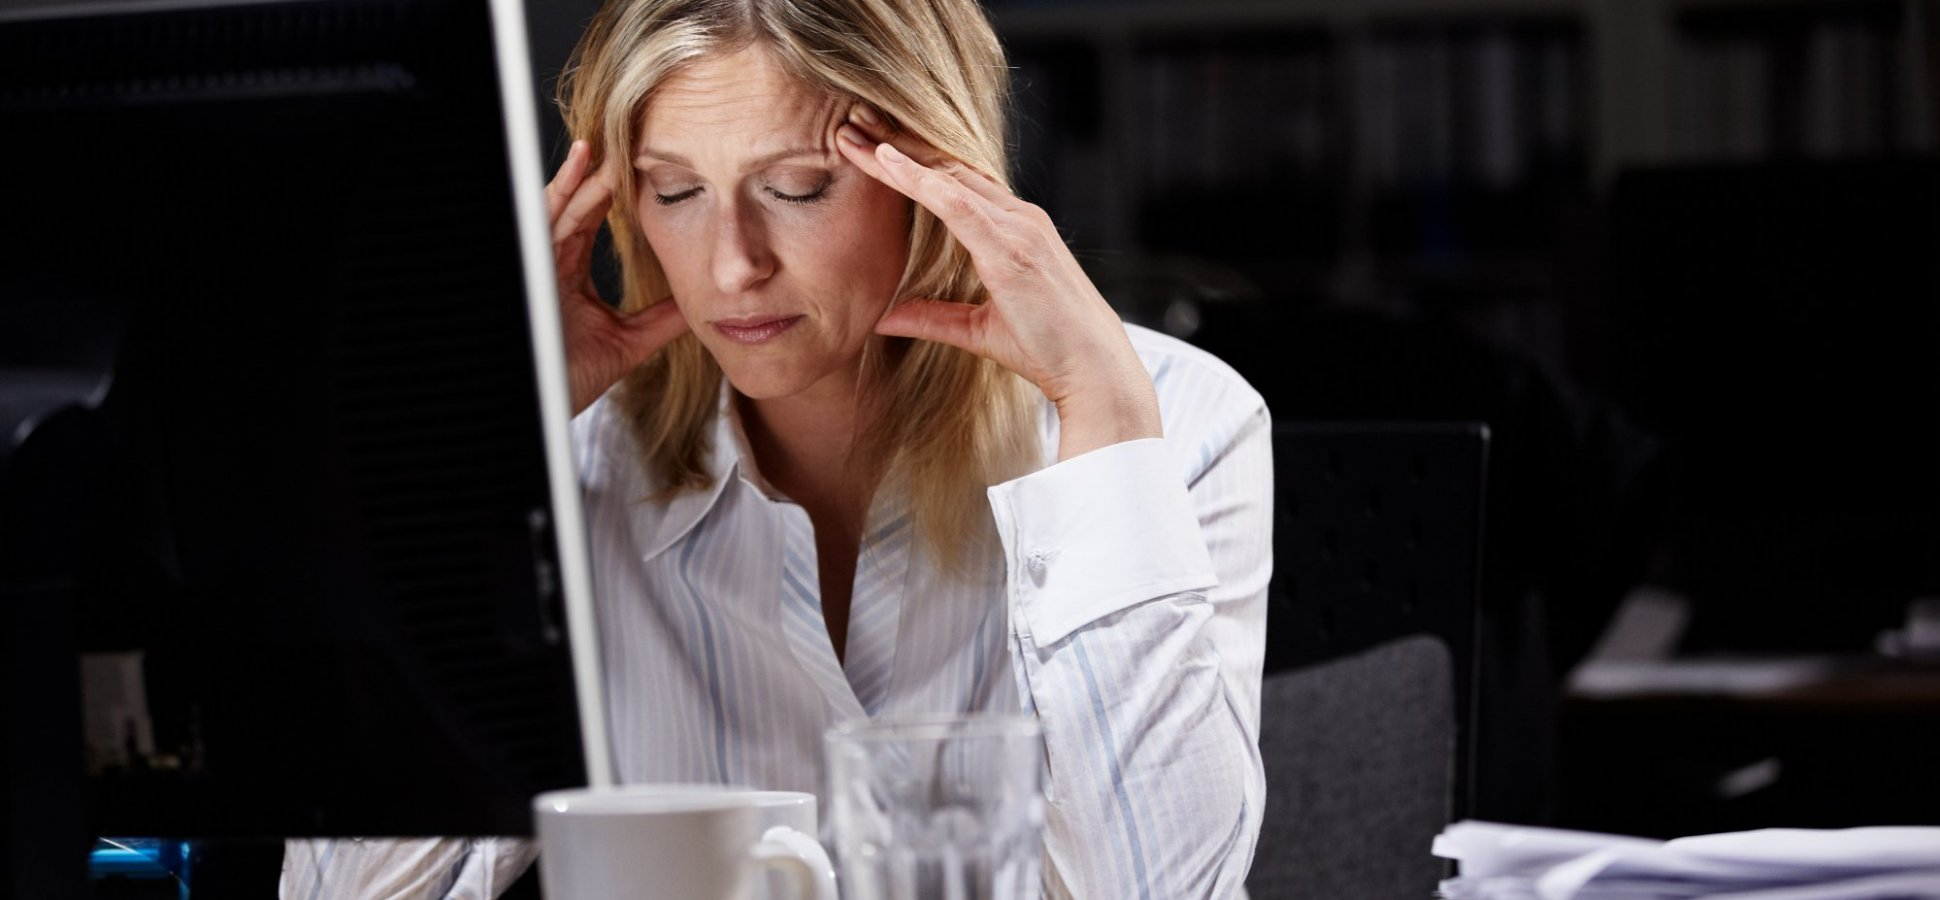 The 1 Thing That Causes Employee Burnout--and Why It's Your Fault